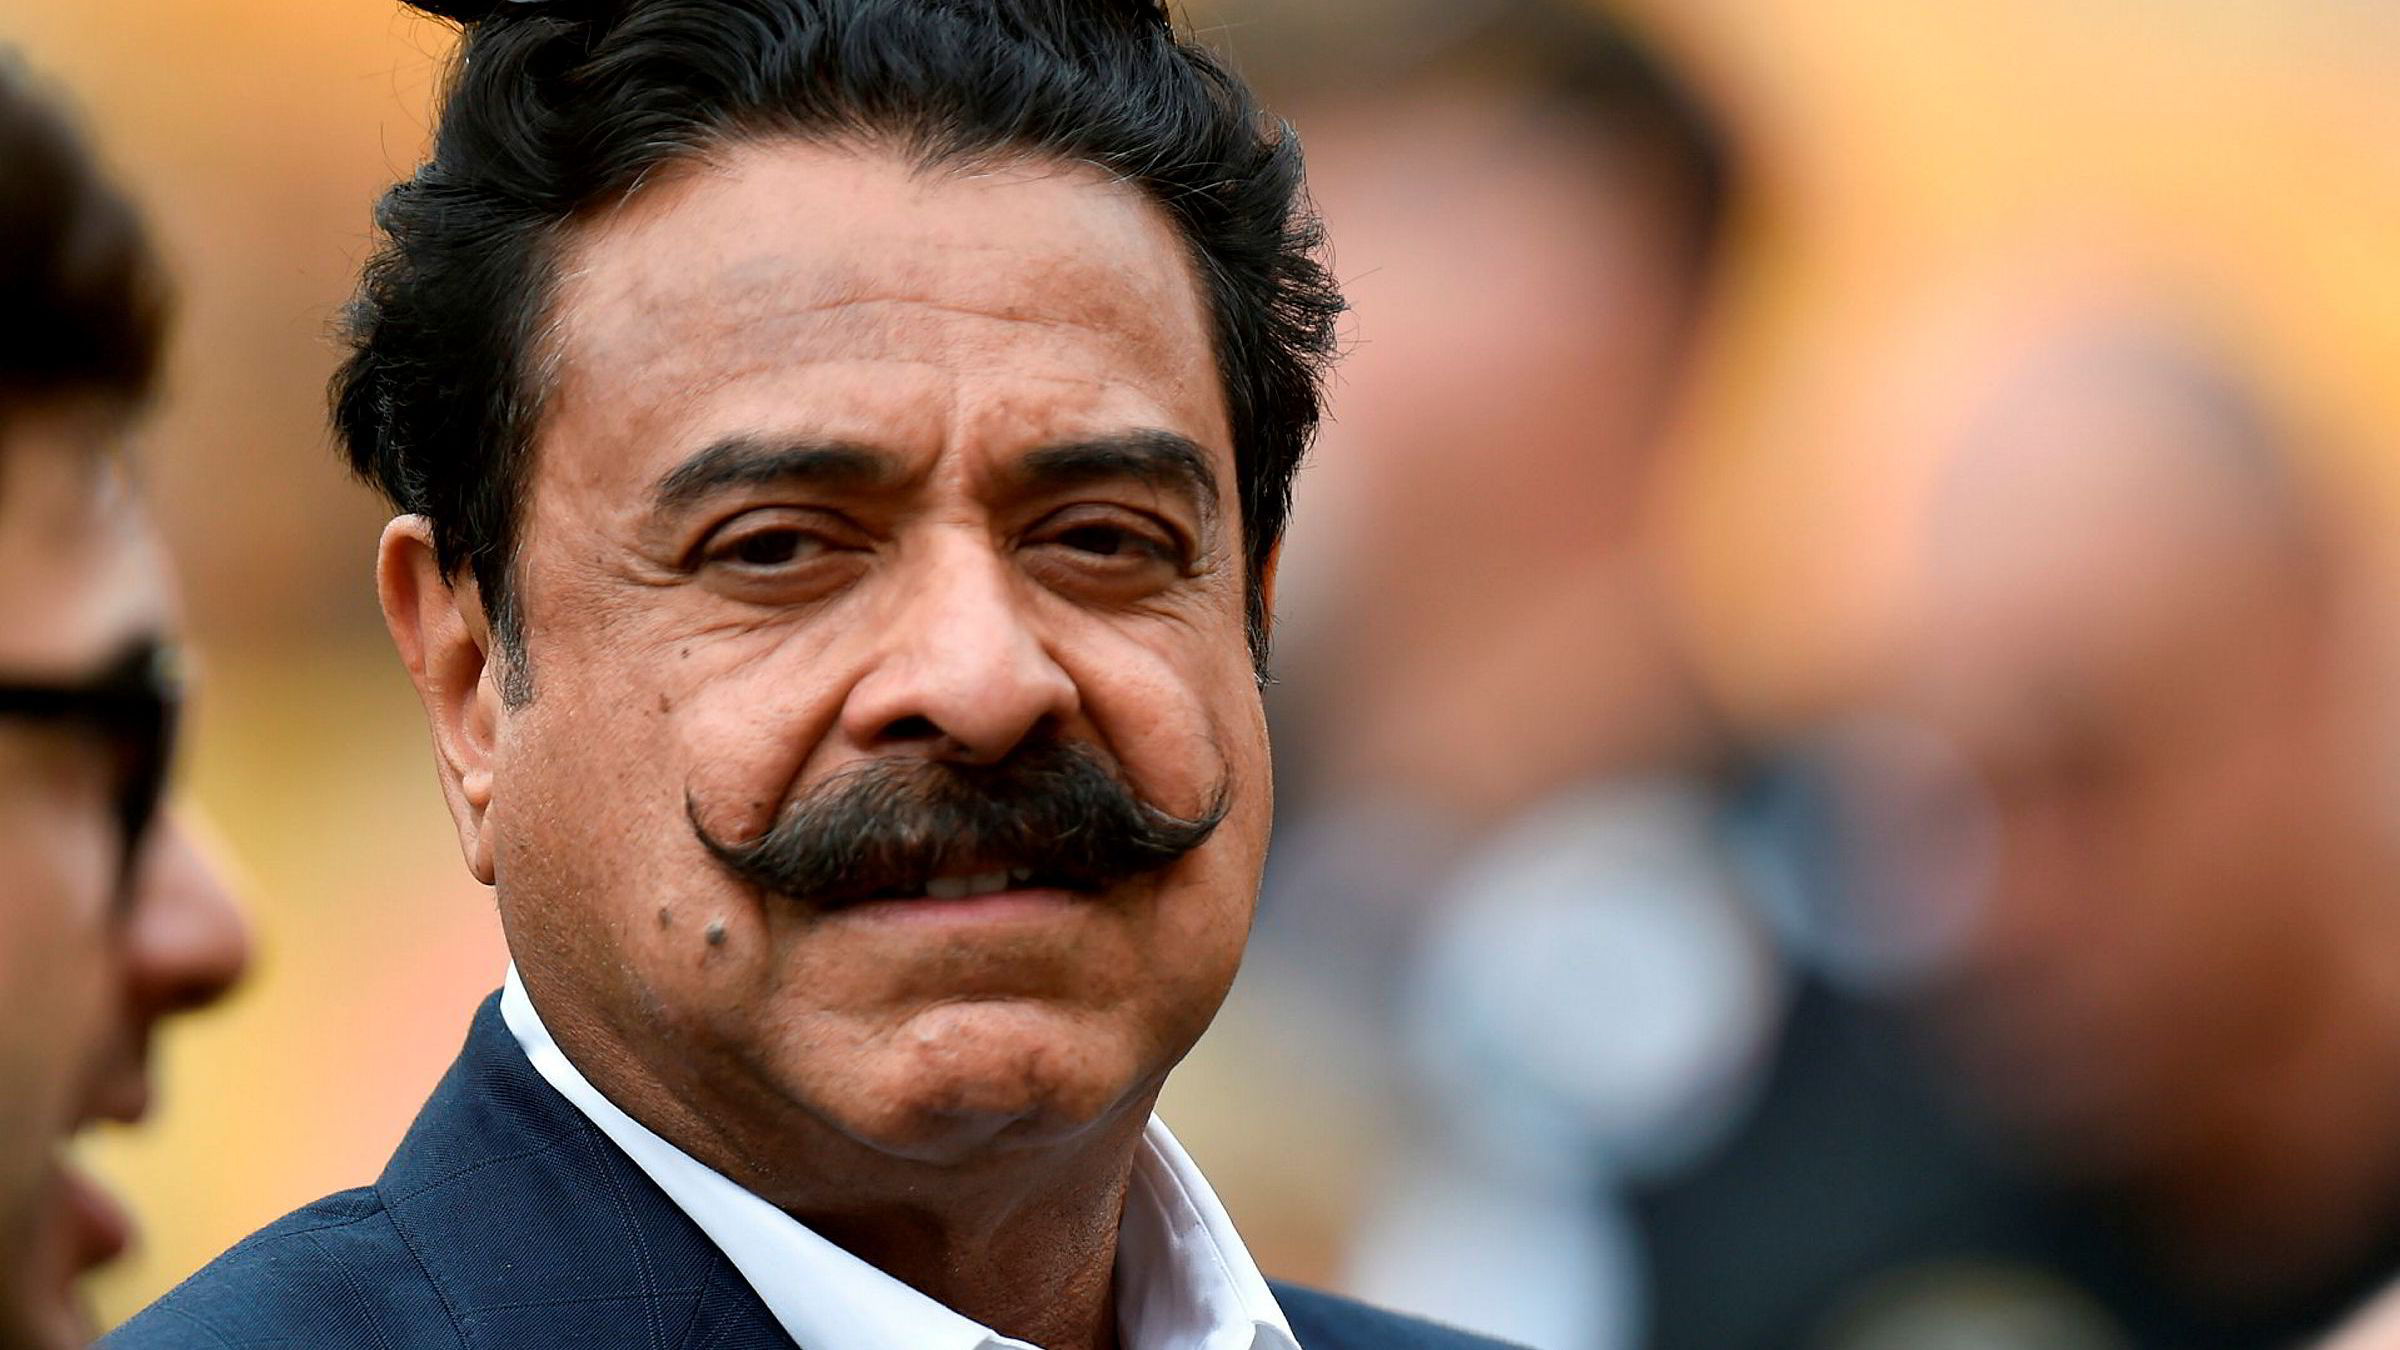 Shahid Khan byr 5,56 milliarder kroner for Wembley stadion i London.